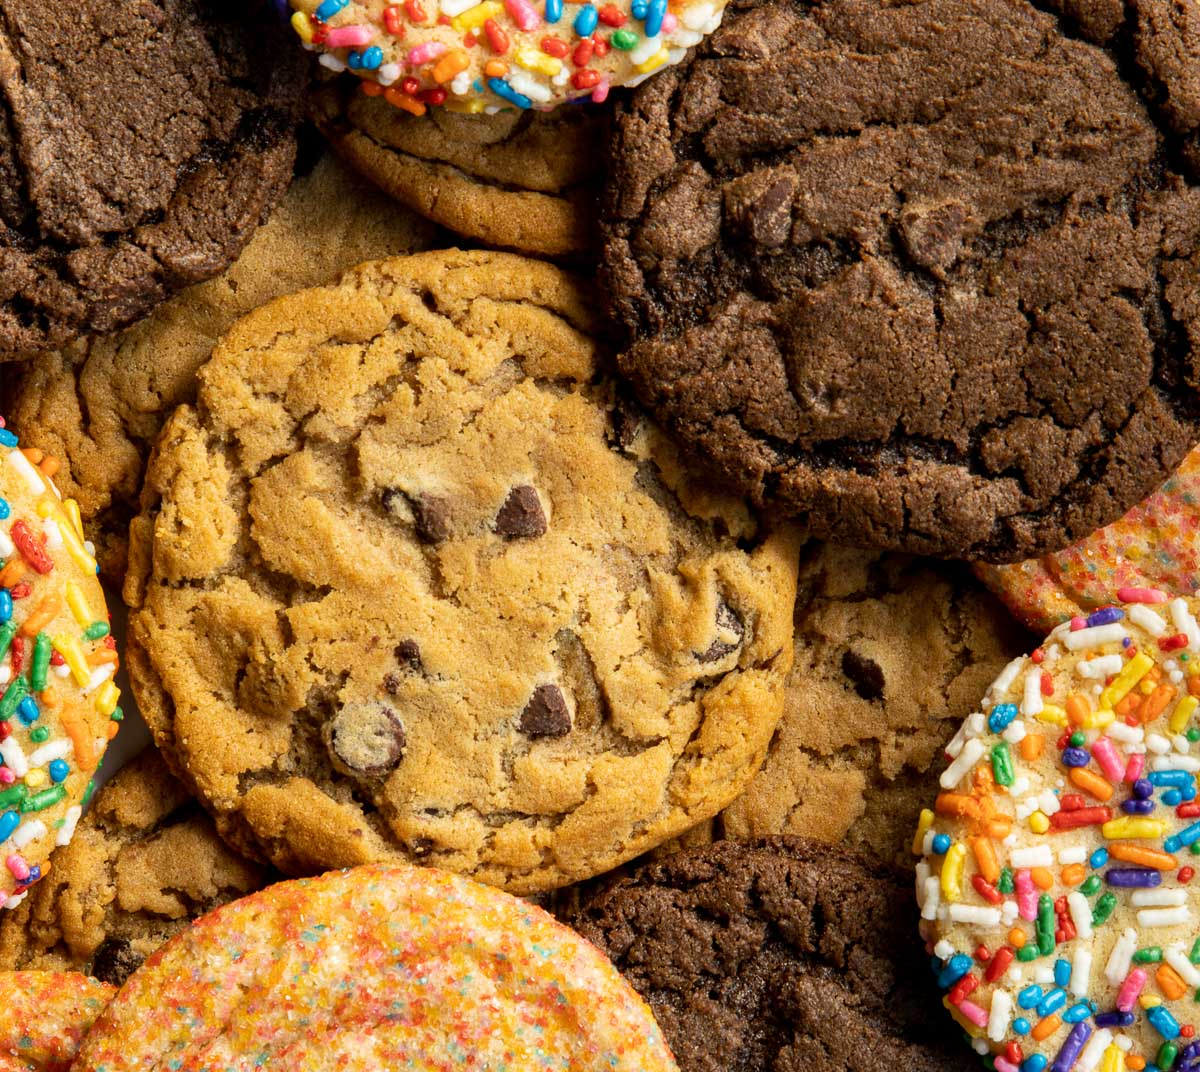 Picture of Assorted cookies including Original chocolate chip, Double fudge, Birthday cake, and Sugar cookies